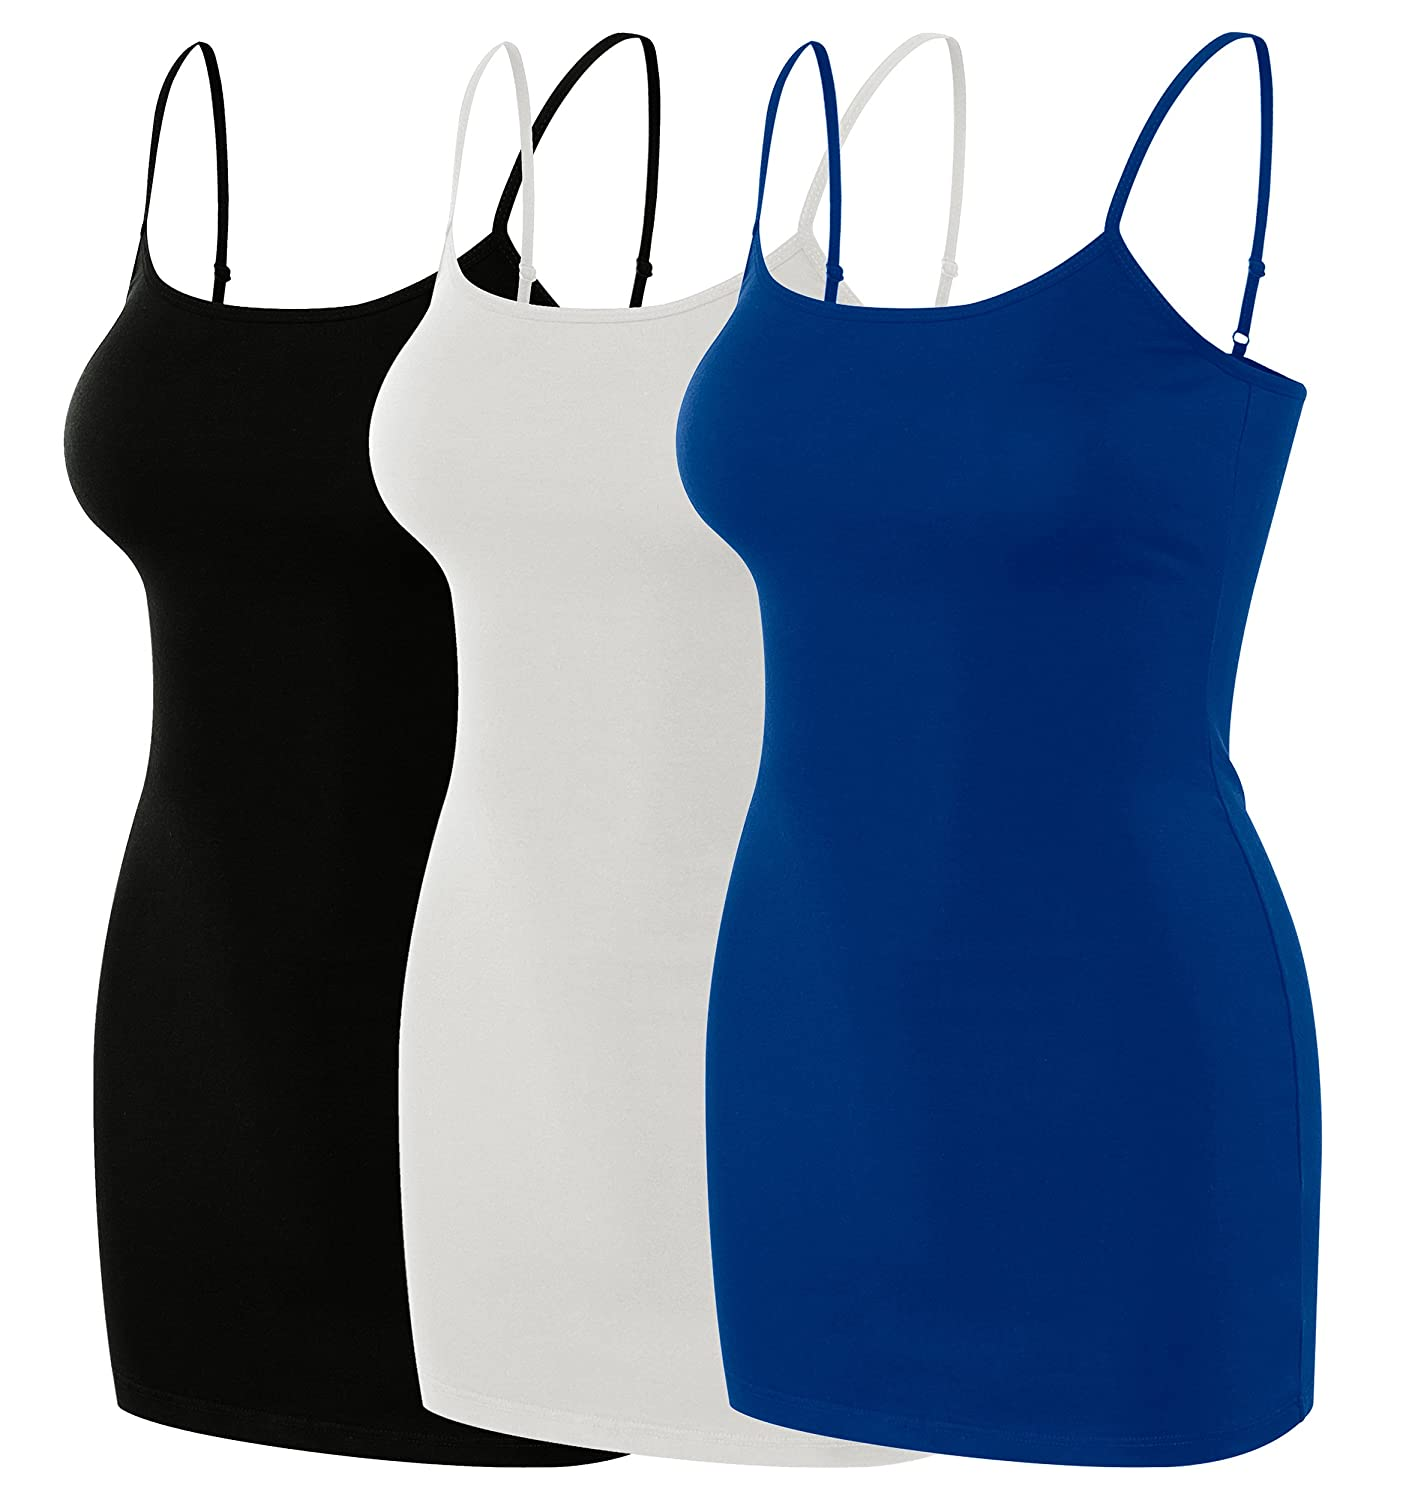 a9292a34309583 95% cotton 5% spandex / imported / machine wash/ soft modal blend stretchy  camis. Women\'s Basic cotton Solid Long Length Adjustable Spaghetti Strap  Tank ...